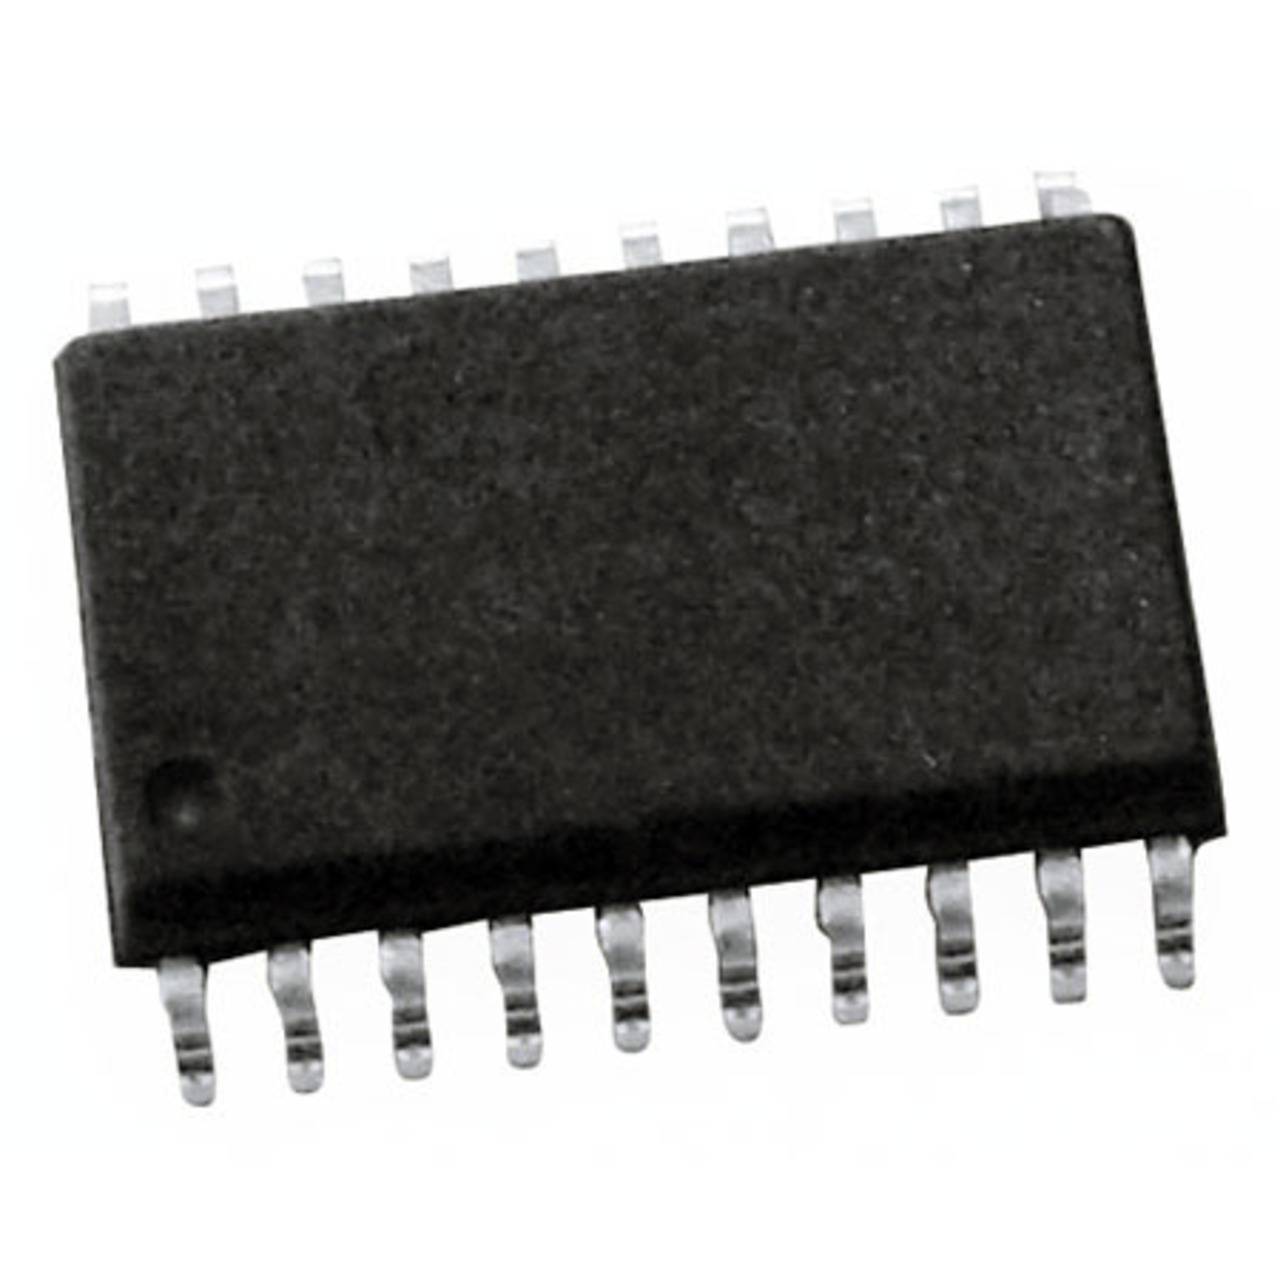 Image of Atmel Mikrocontroller AT 89C2051-24SU, SOIC-20